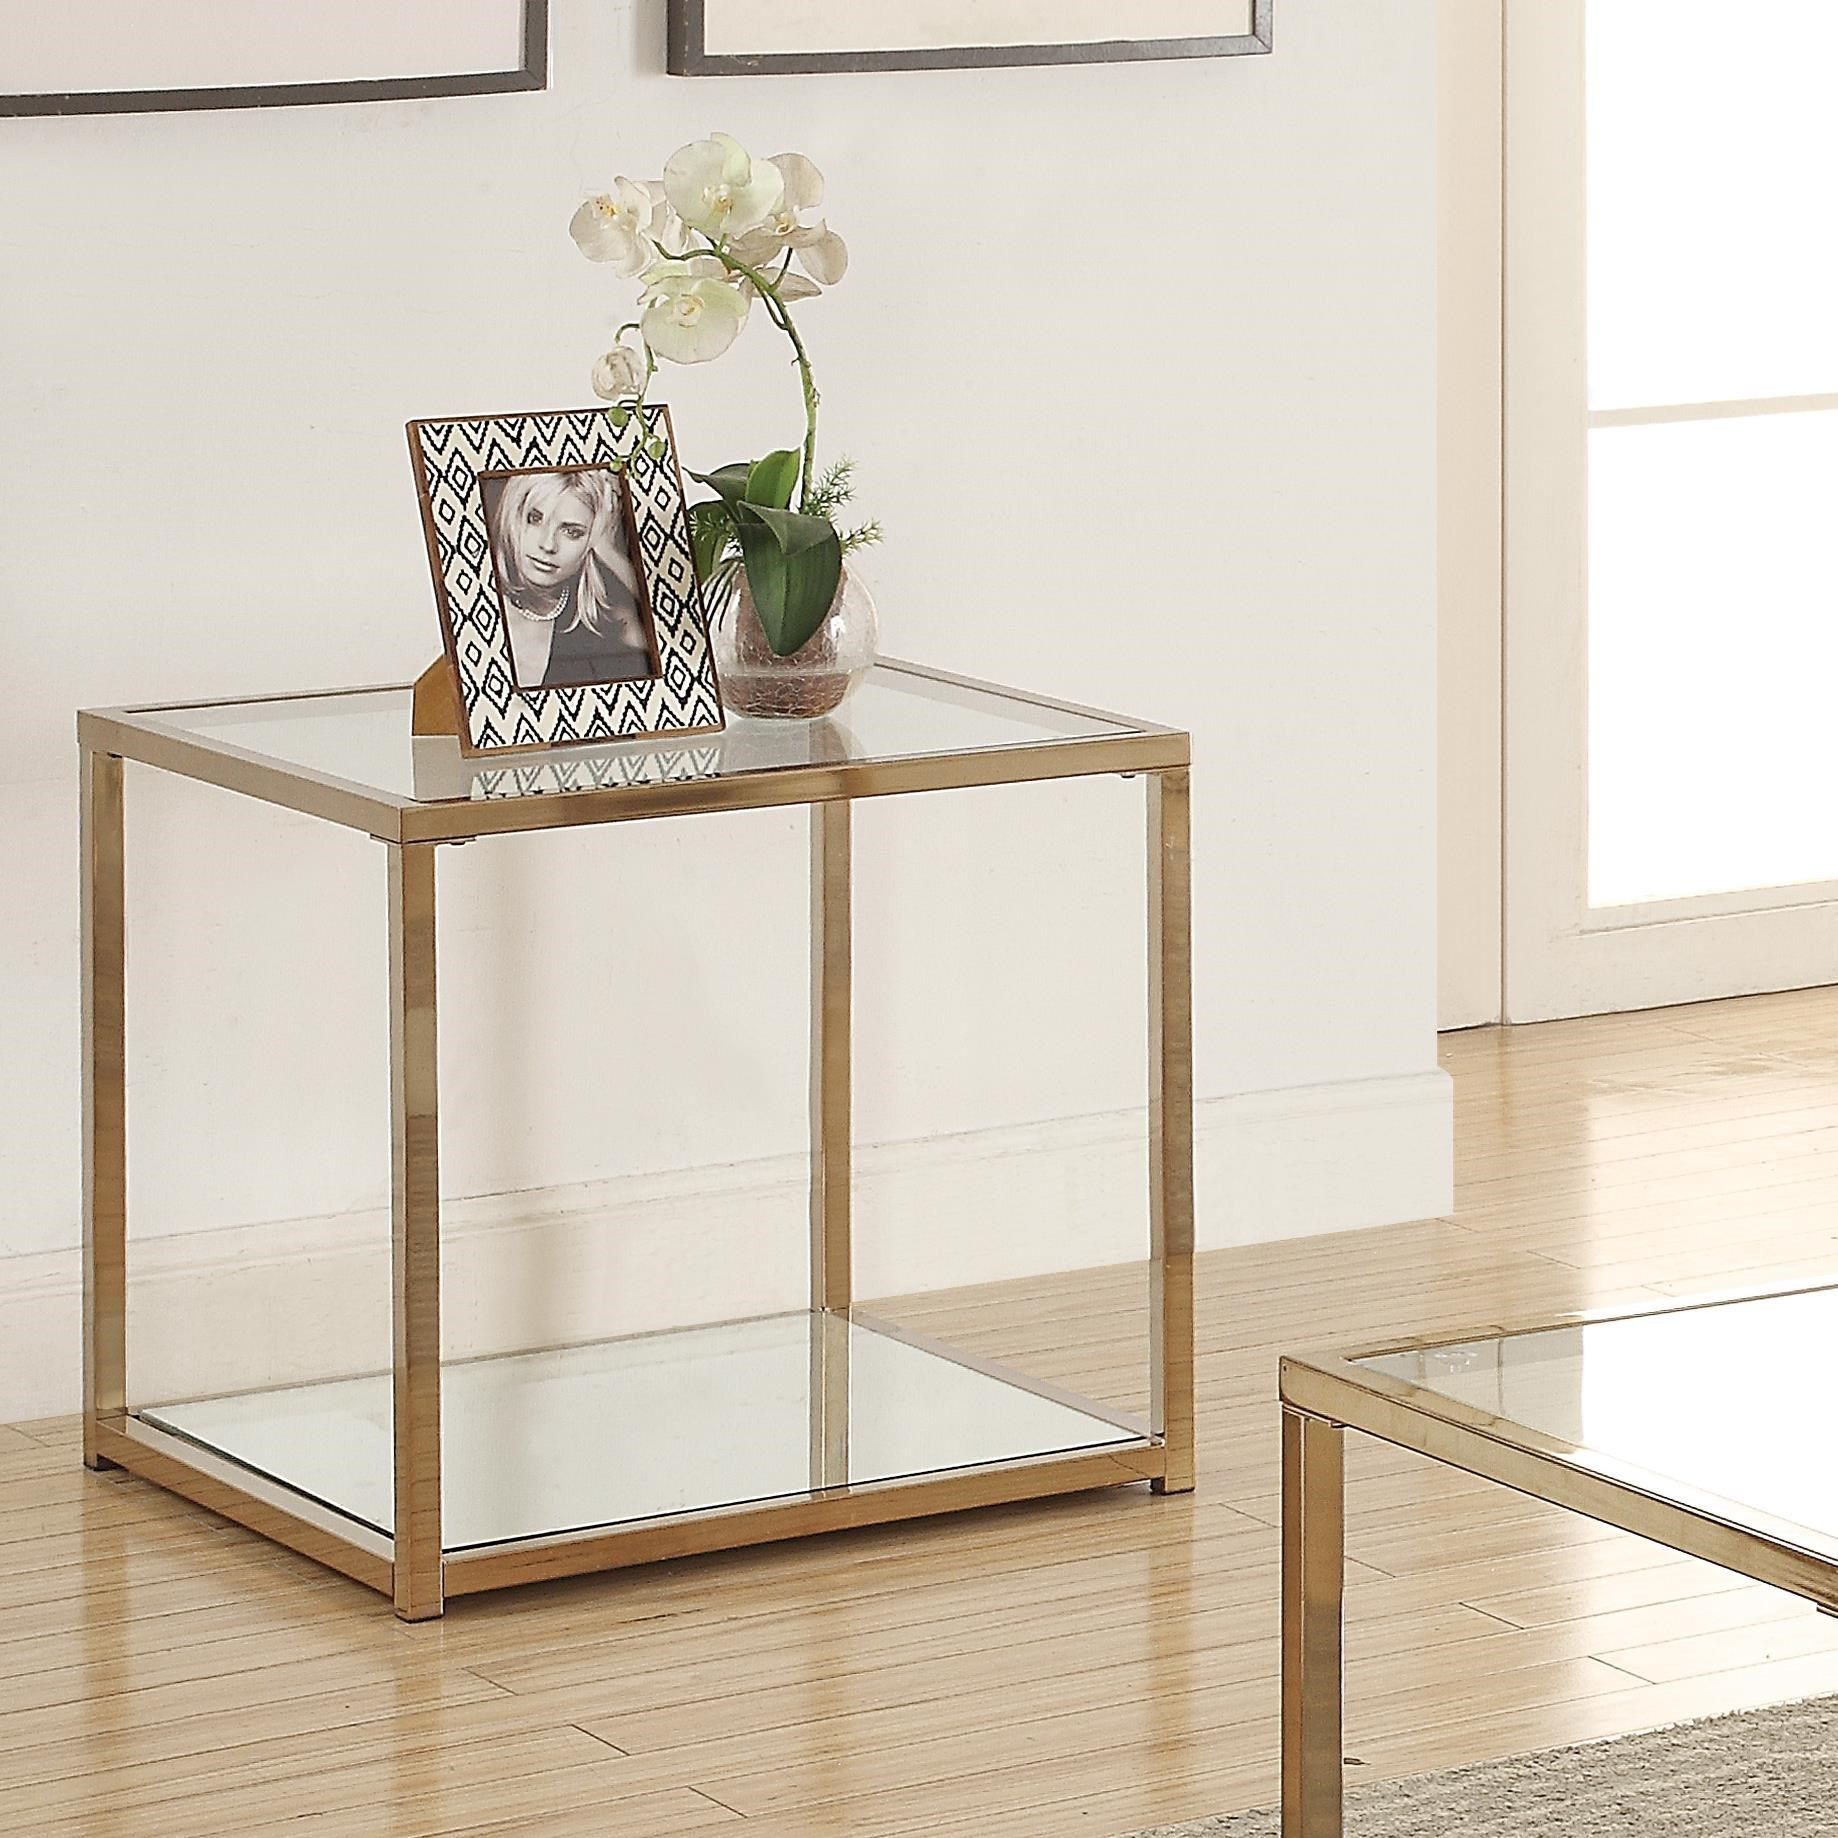 Calantha End Table by Coaster at Northeast Factory Direct